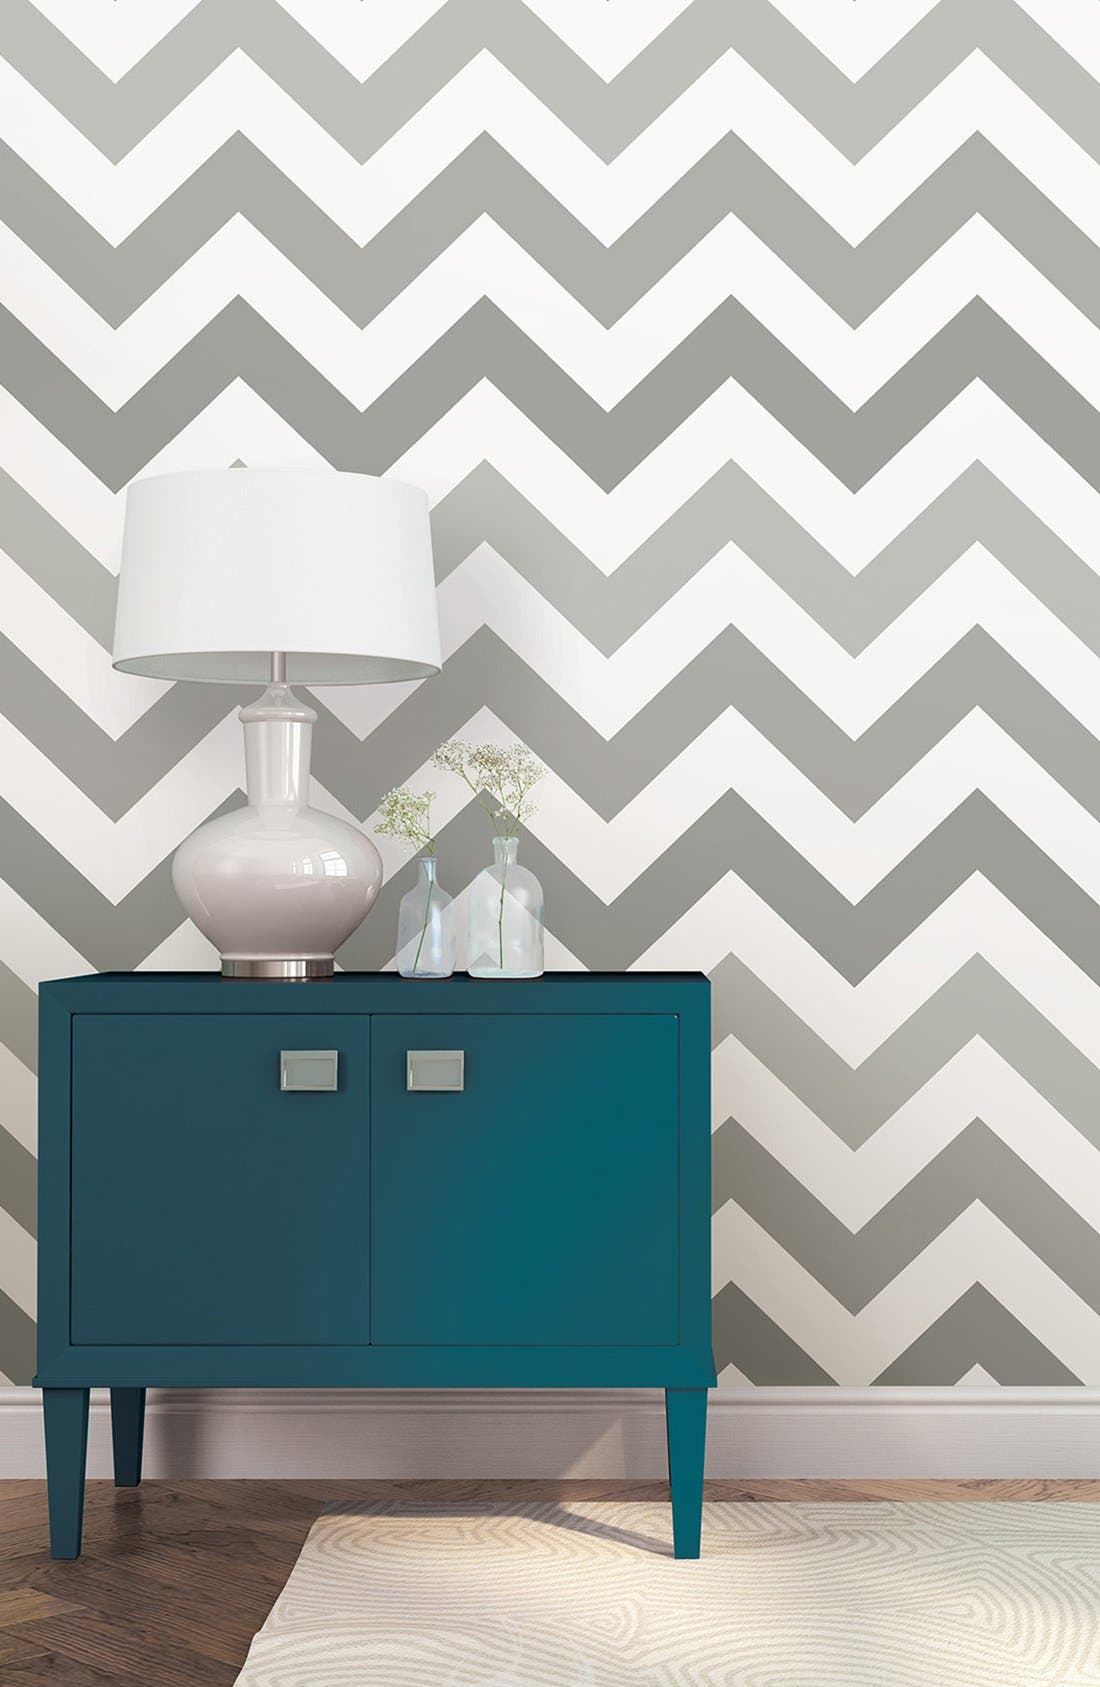 Alternate Image 2  - Wallpops 'Zig Zag' Reusable Peel & Stick Vinyl Wallpaper